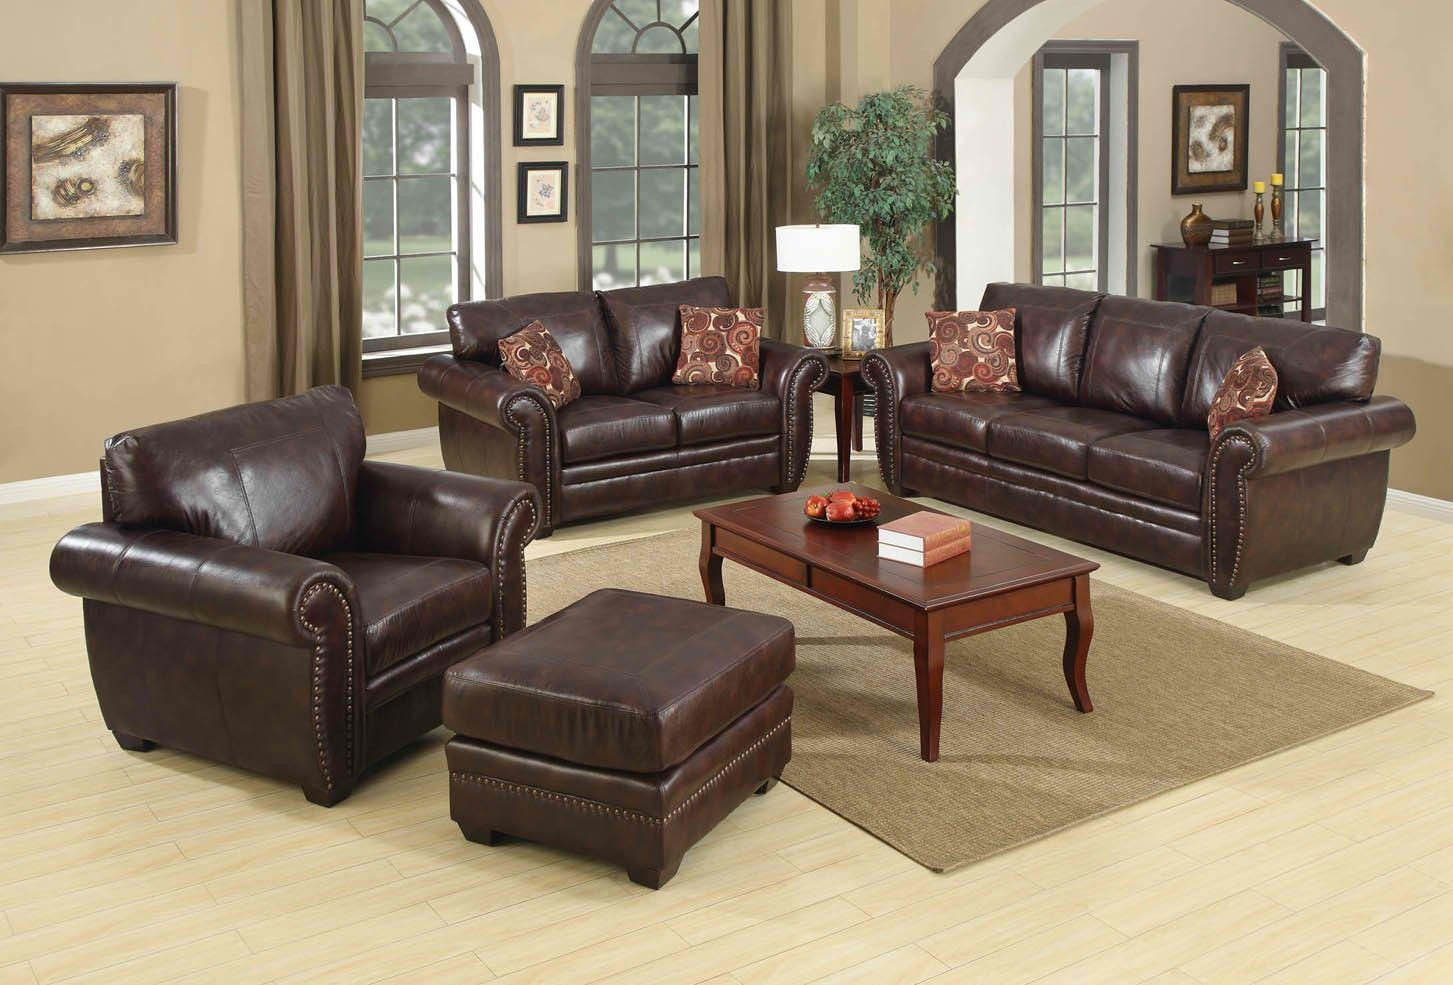 Leather Living Room Chairs Wall Colors For Brown Furniture List 17 Ideas In Best Wall Color